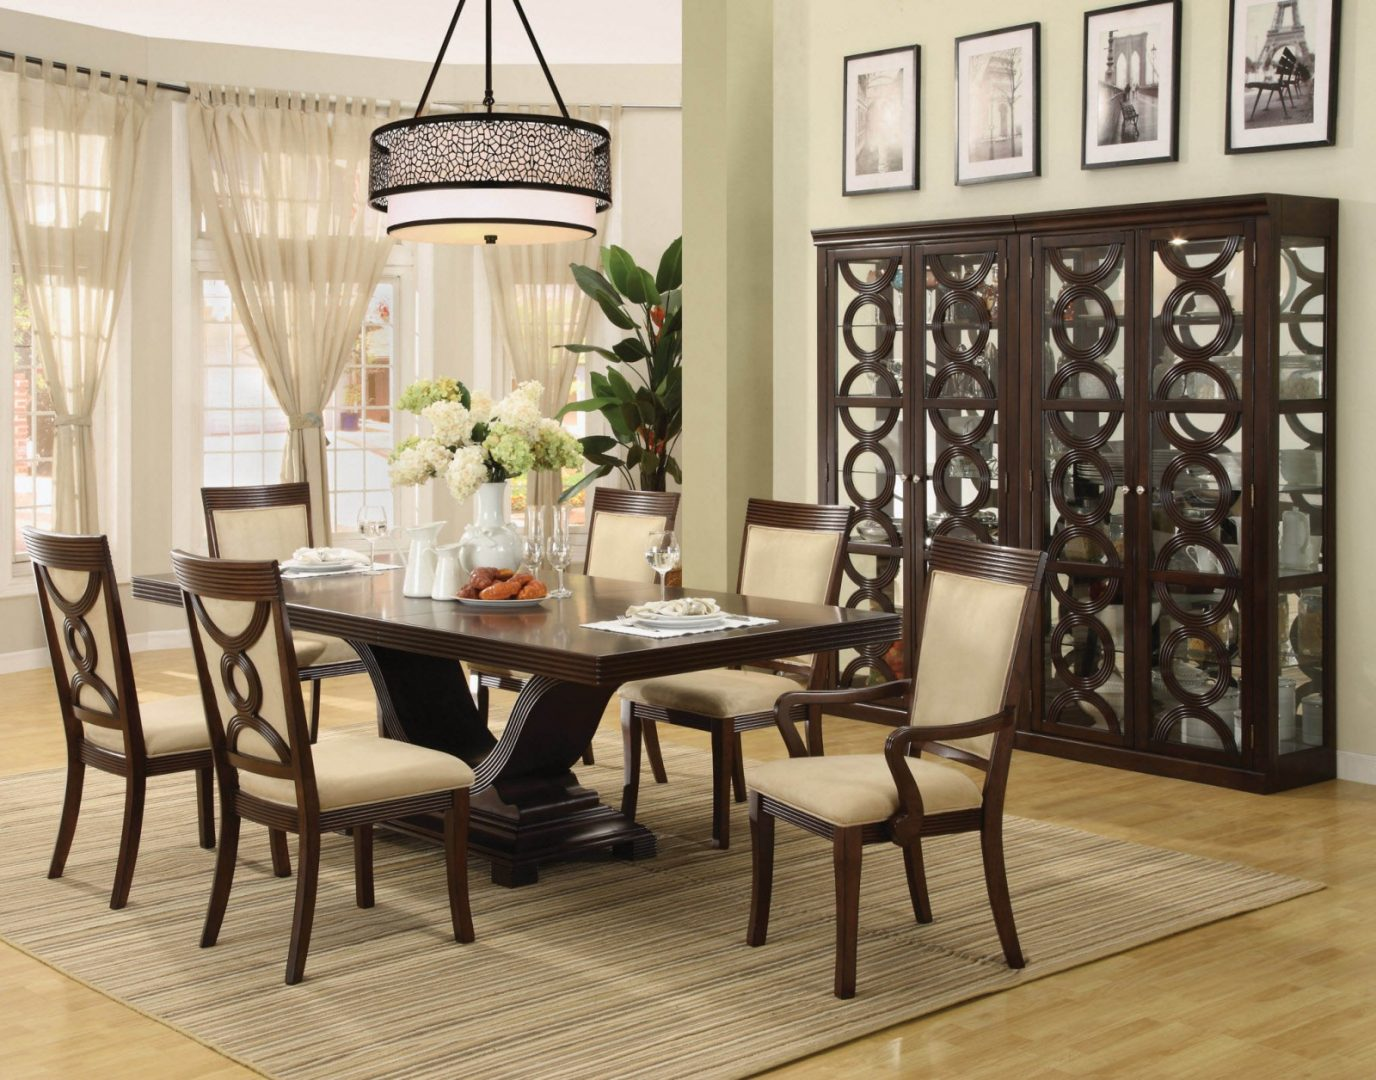 modern dining room ceiling lights photo - 3